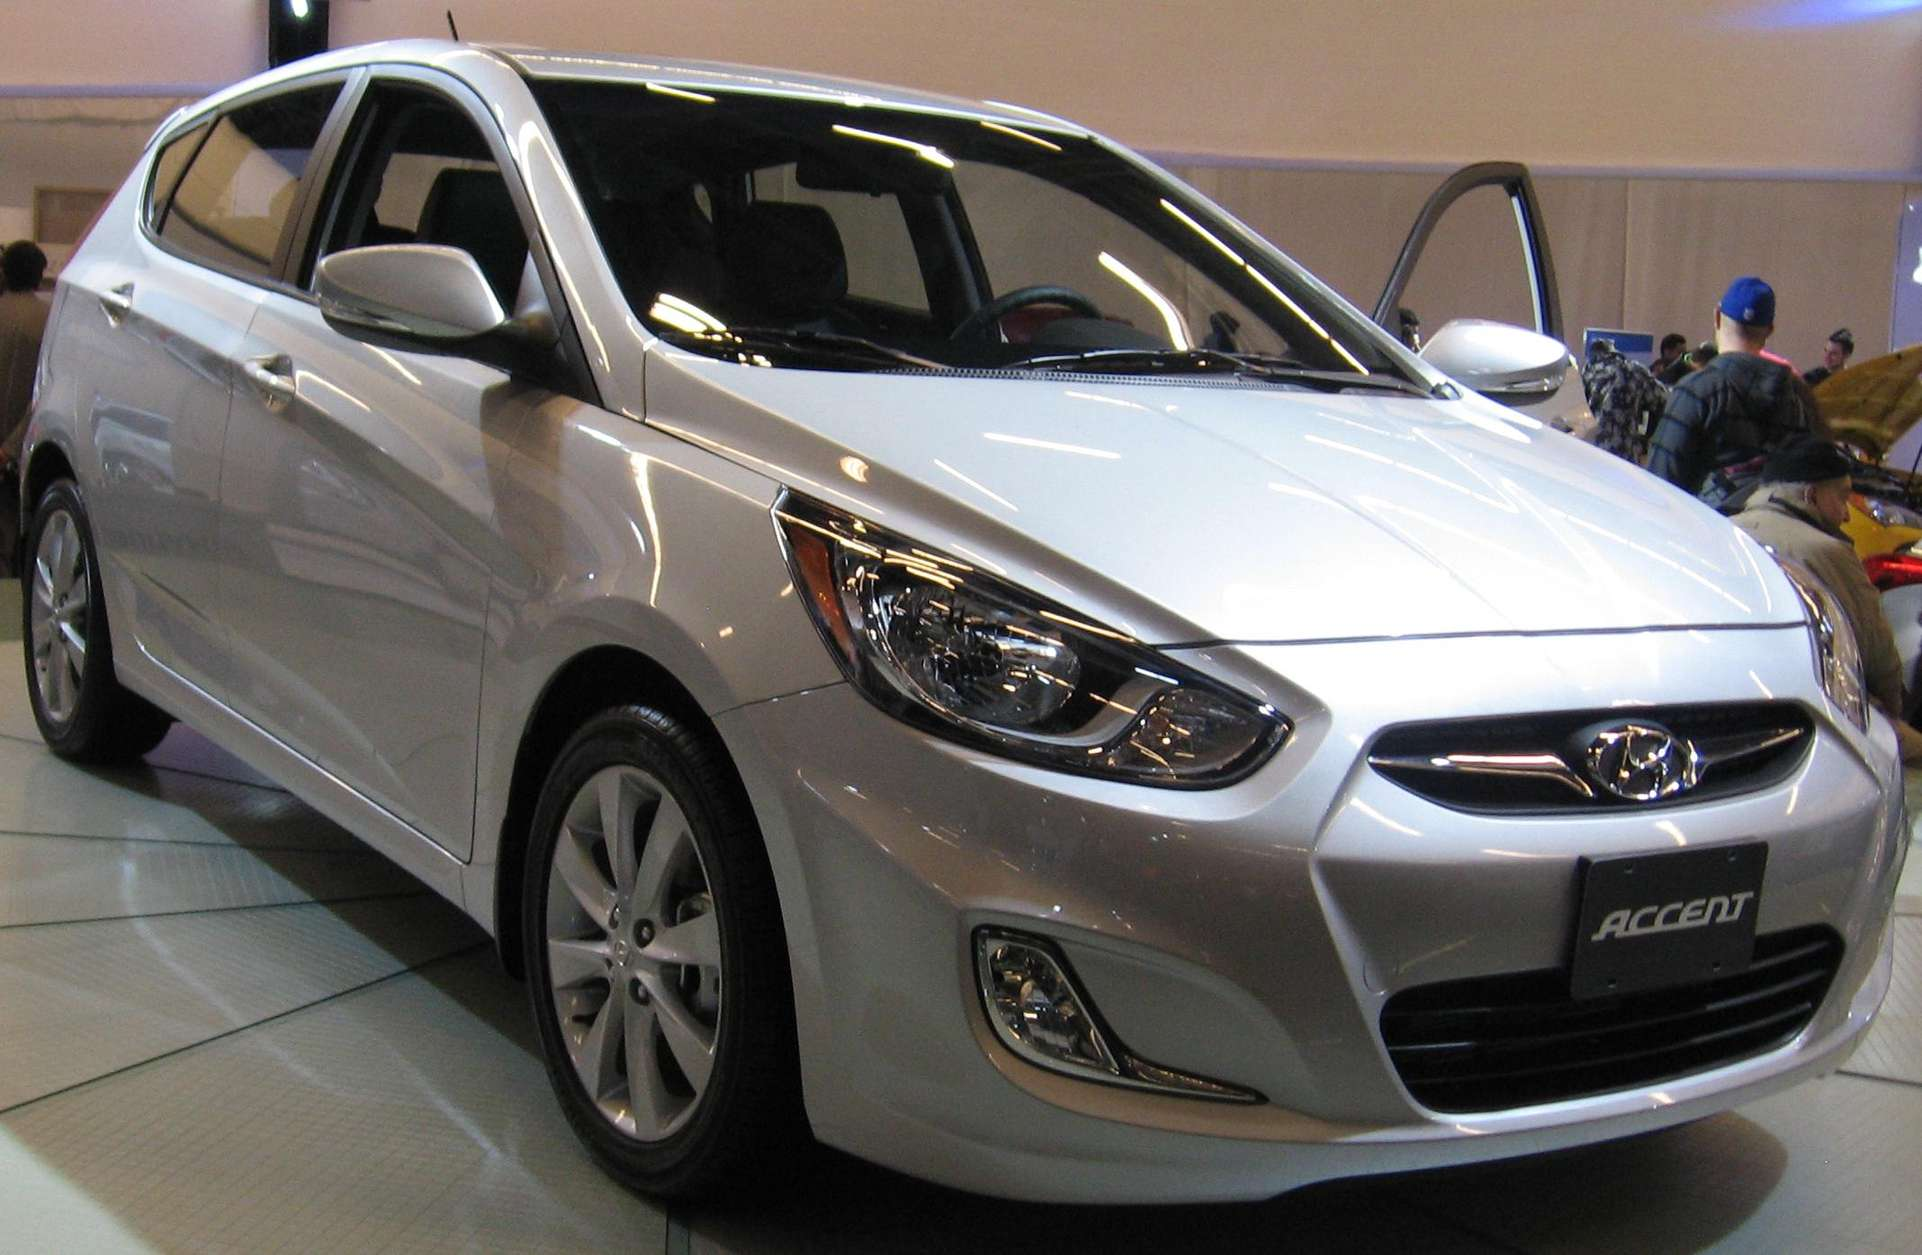 Hyundai Accent hatchback #7364019